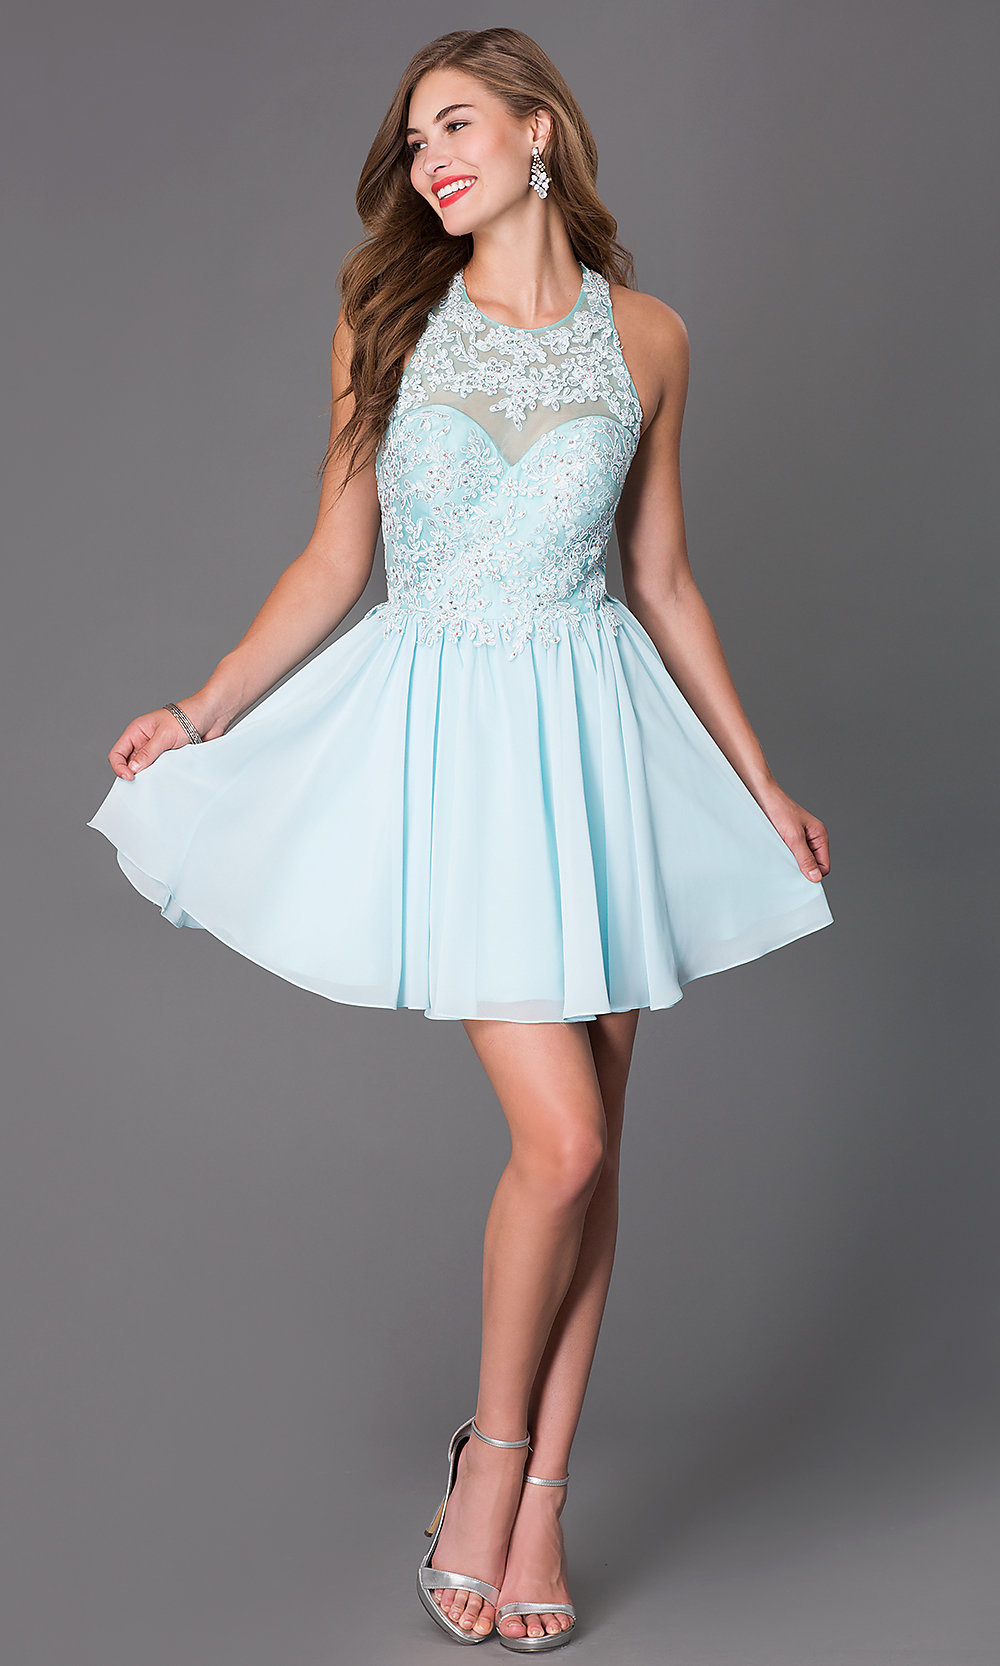 Sleeveless Beaded Lace Short Dress Promgirl